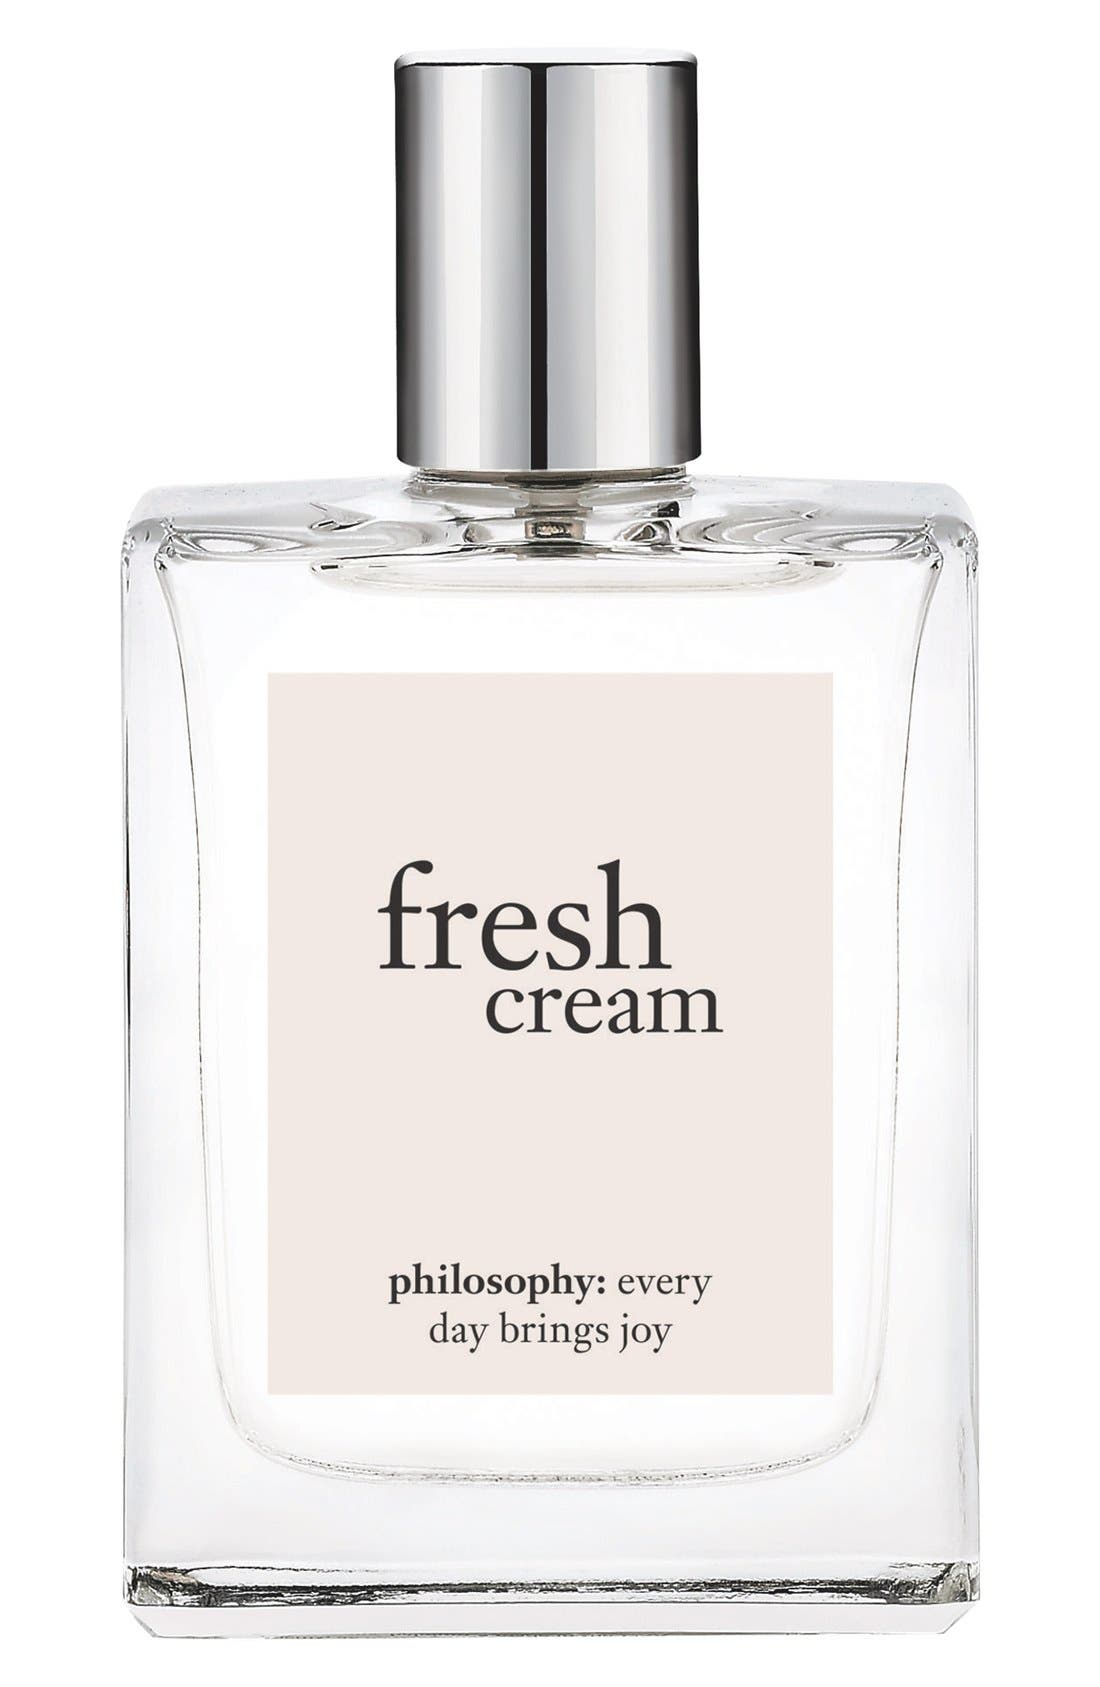 philosophy 'fresh cream' eau de toilette